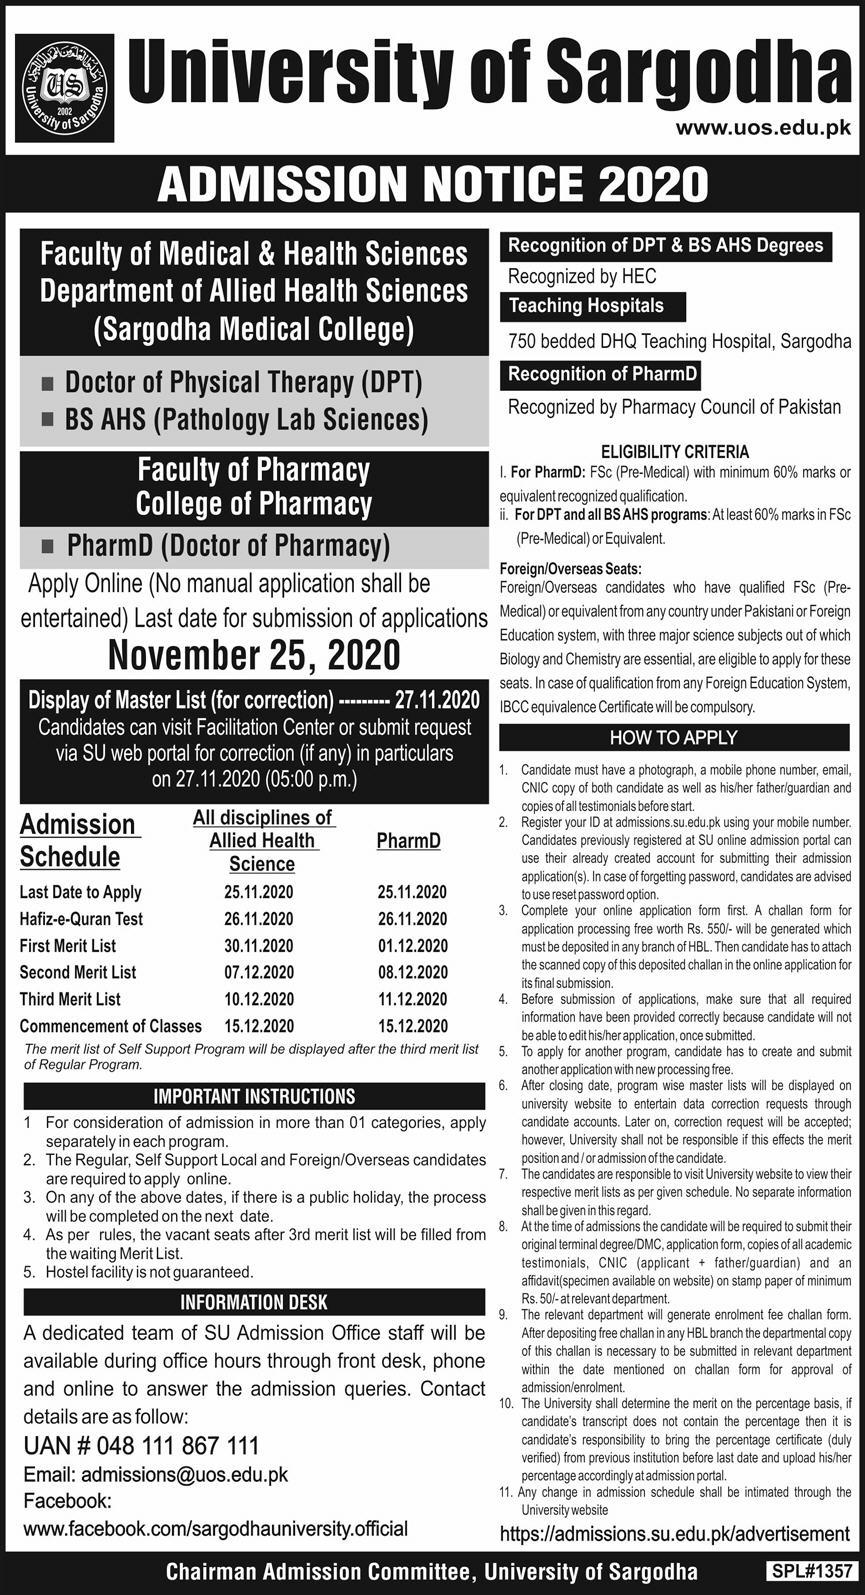 University Of Sargodha DPT, BS AHS, and Pharm D Admissions 2020